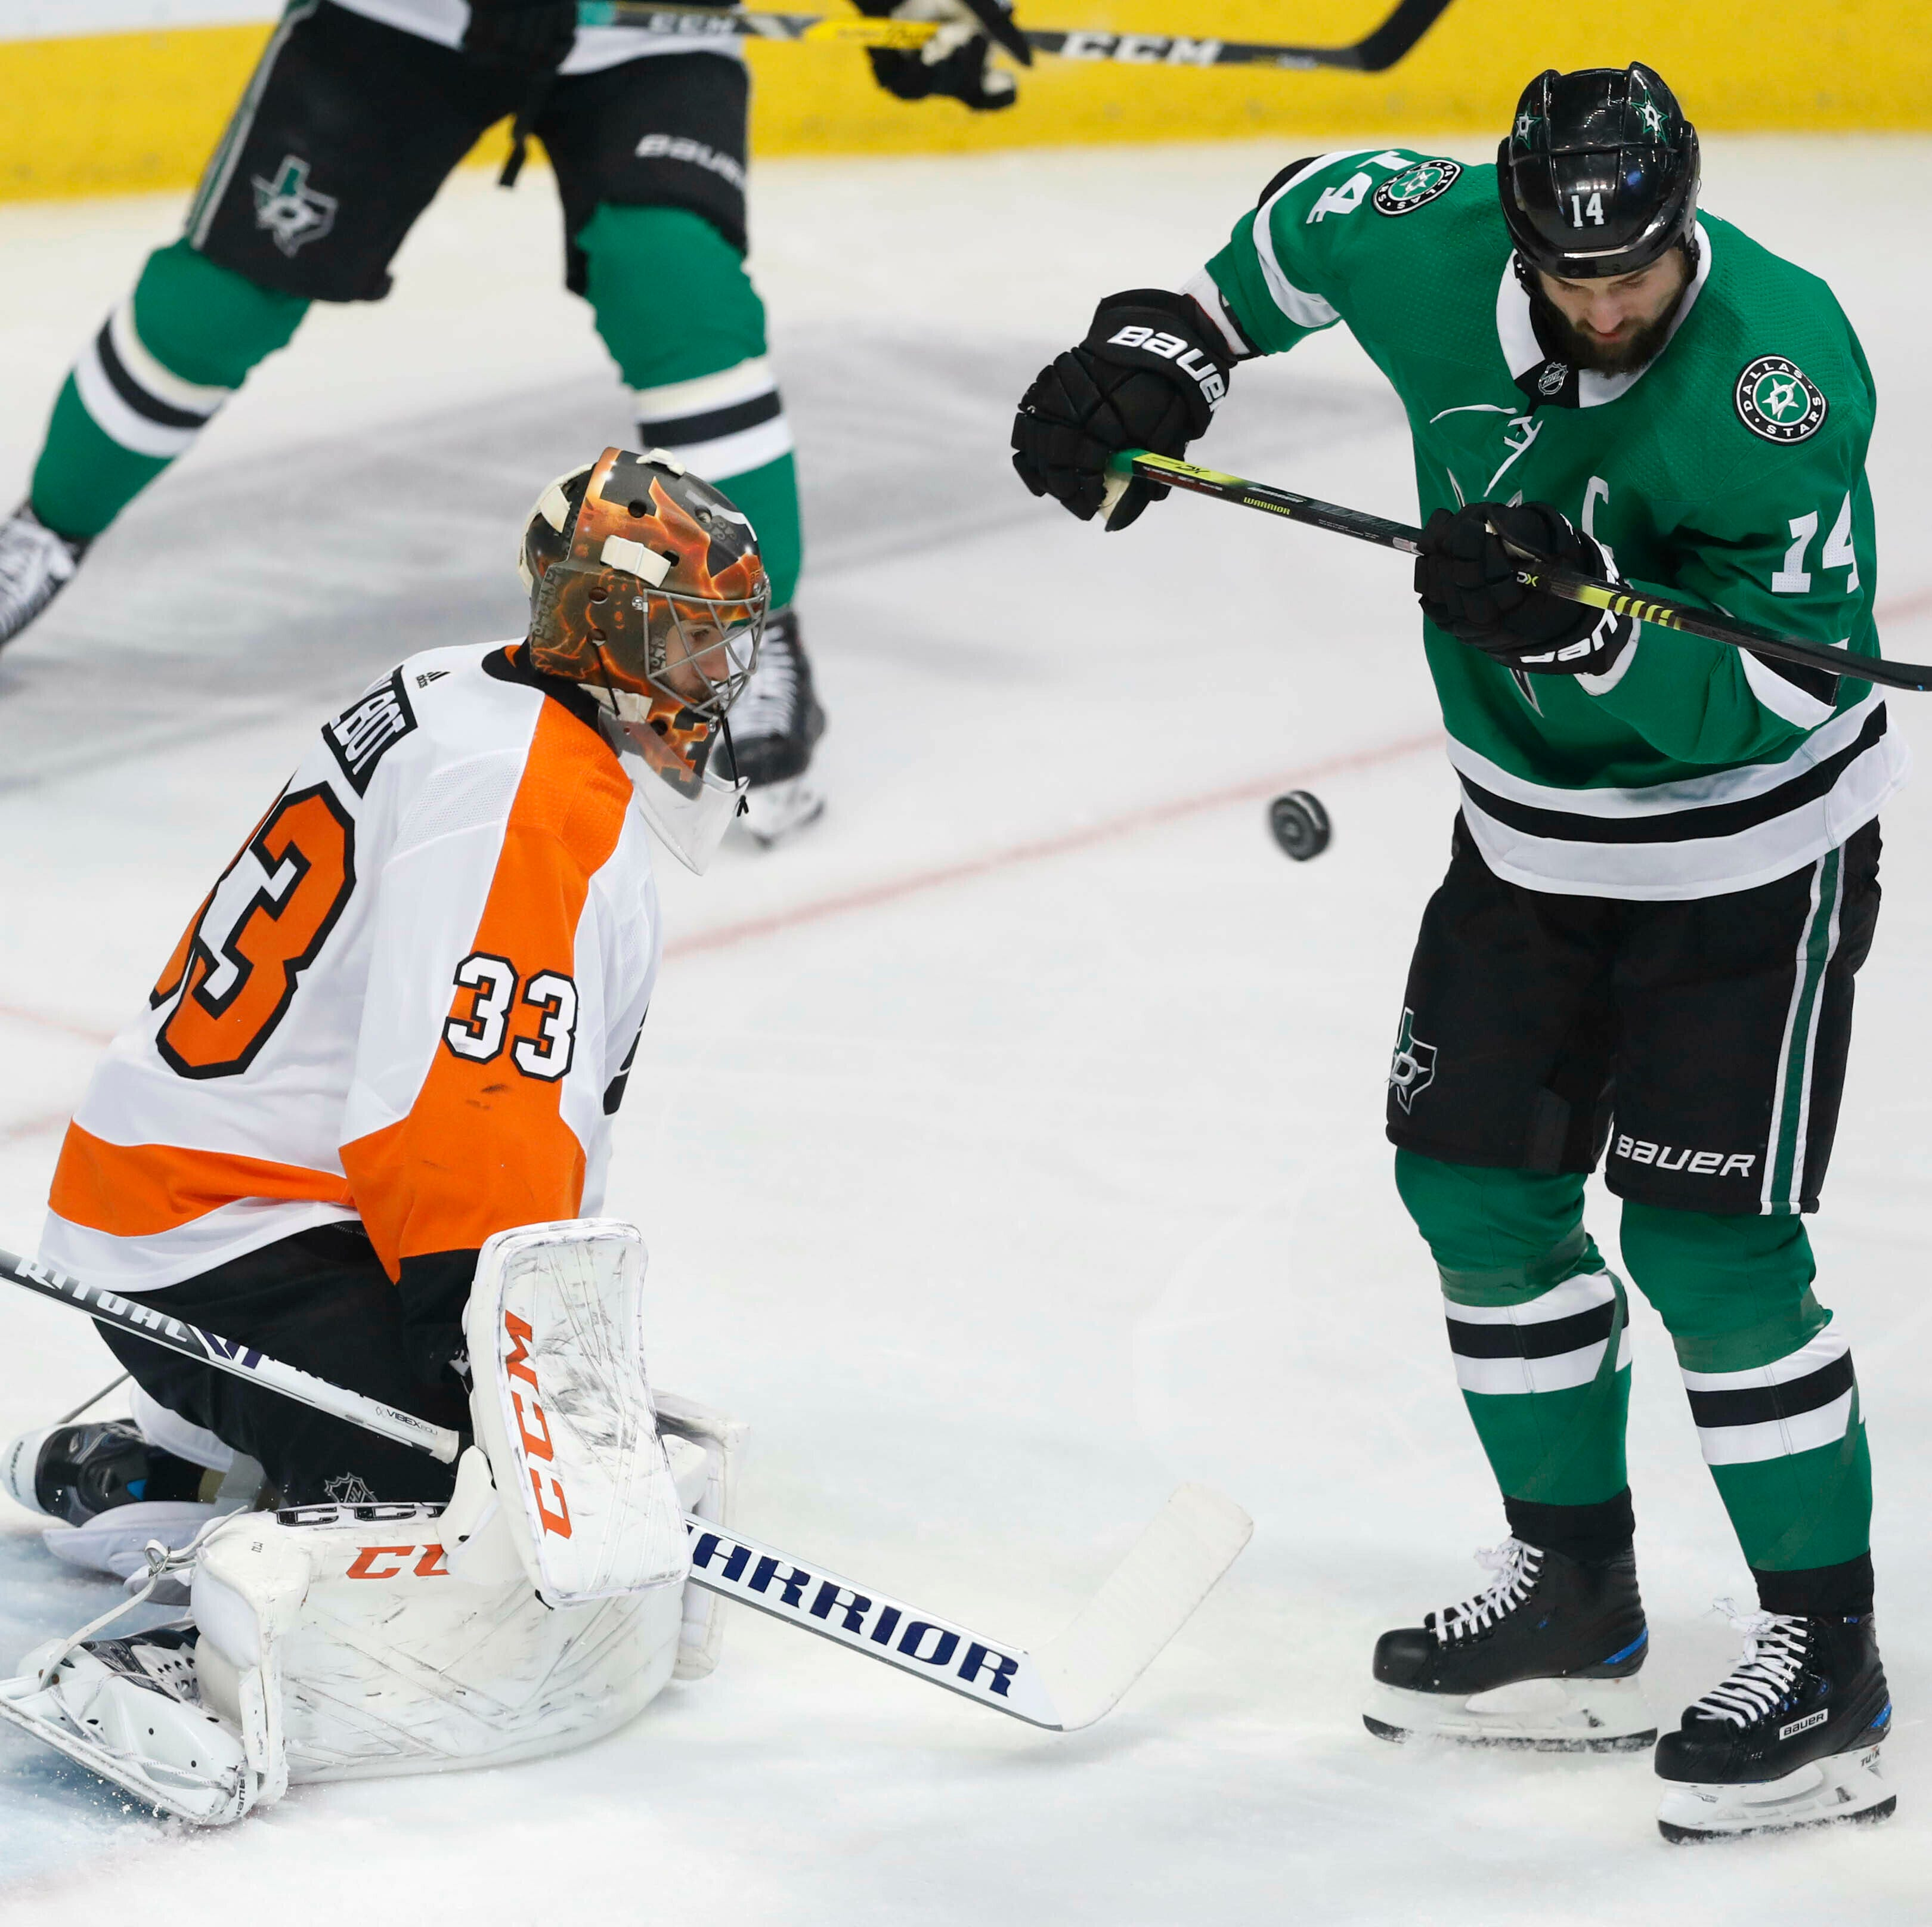 Stars clinch 1st playoff trip since 2016, beating Flyers 6-2